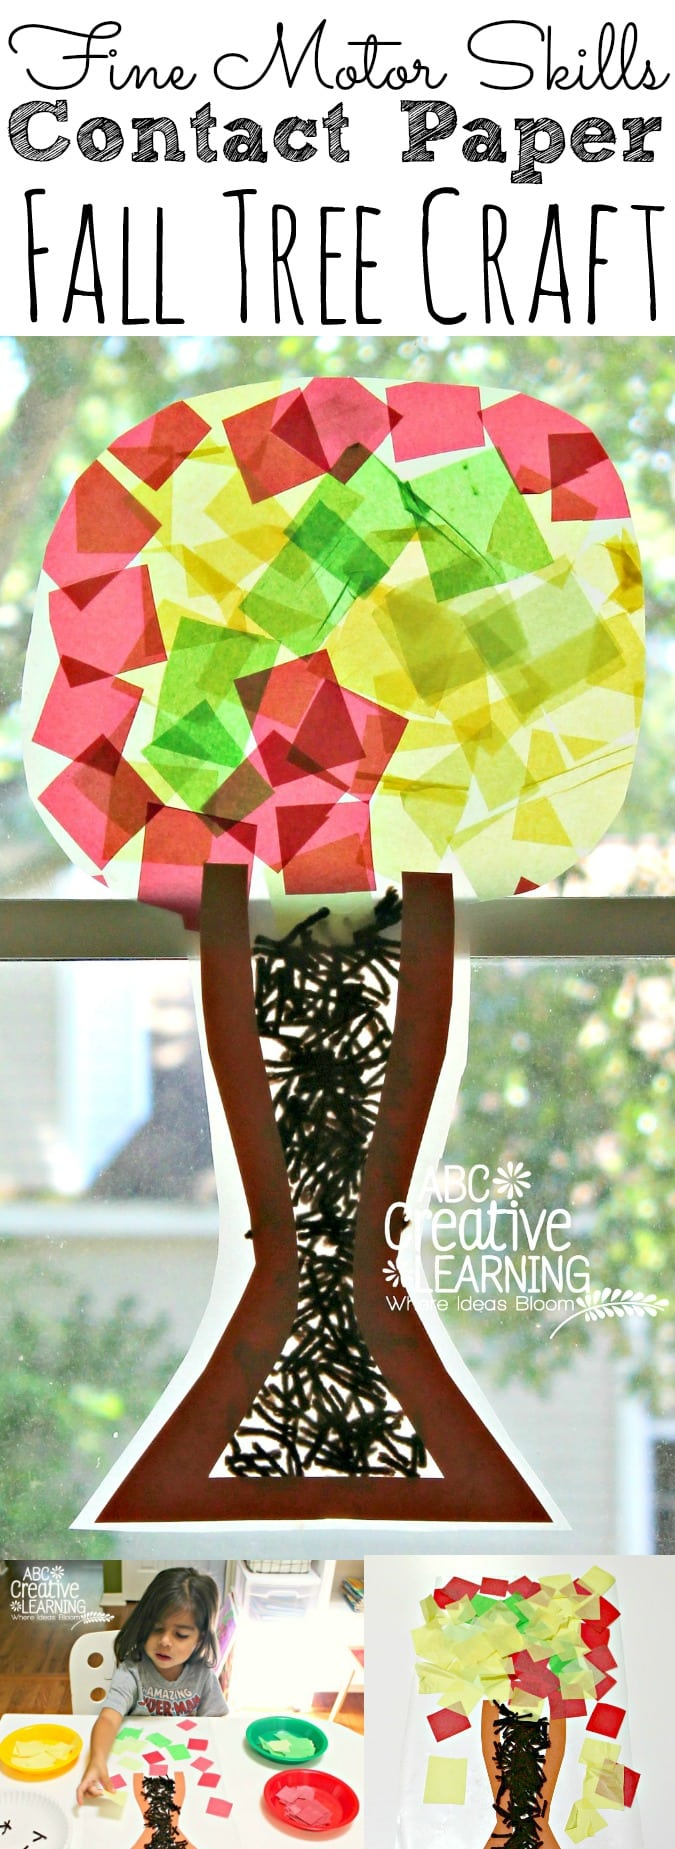 Fine Motor Skills Contact Paper Fall Tree Craft